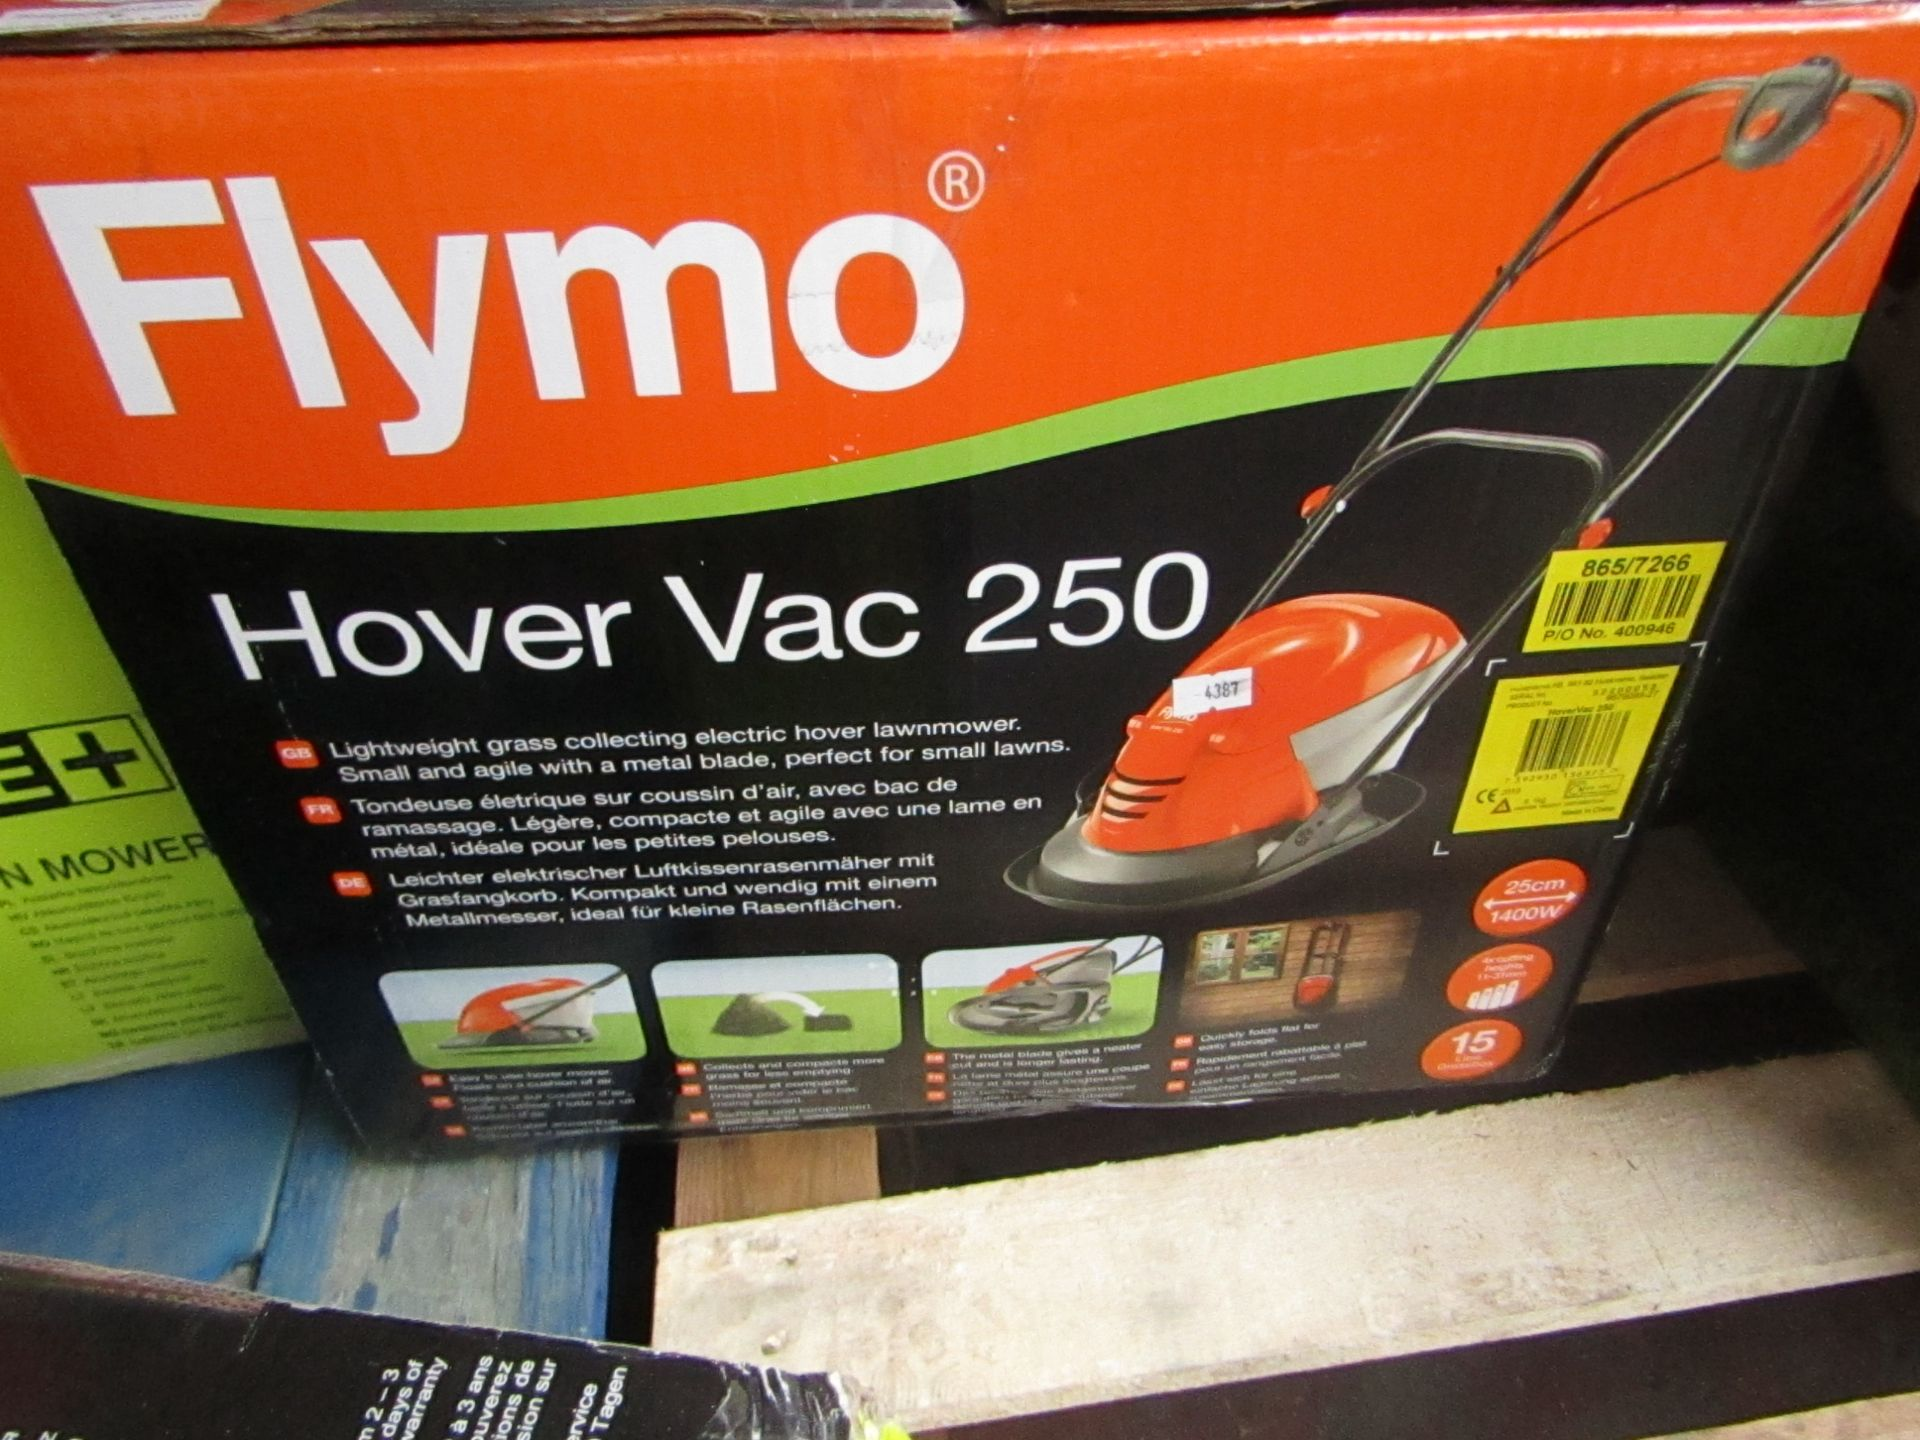 Lotto 6 - Flymo Hover vac 250, tested working and boxed, RRP œ75